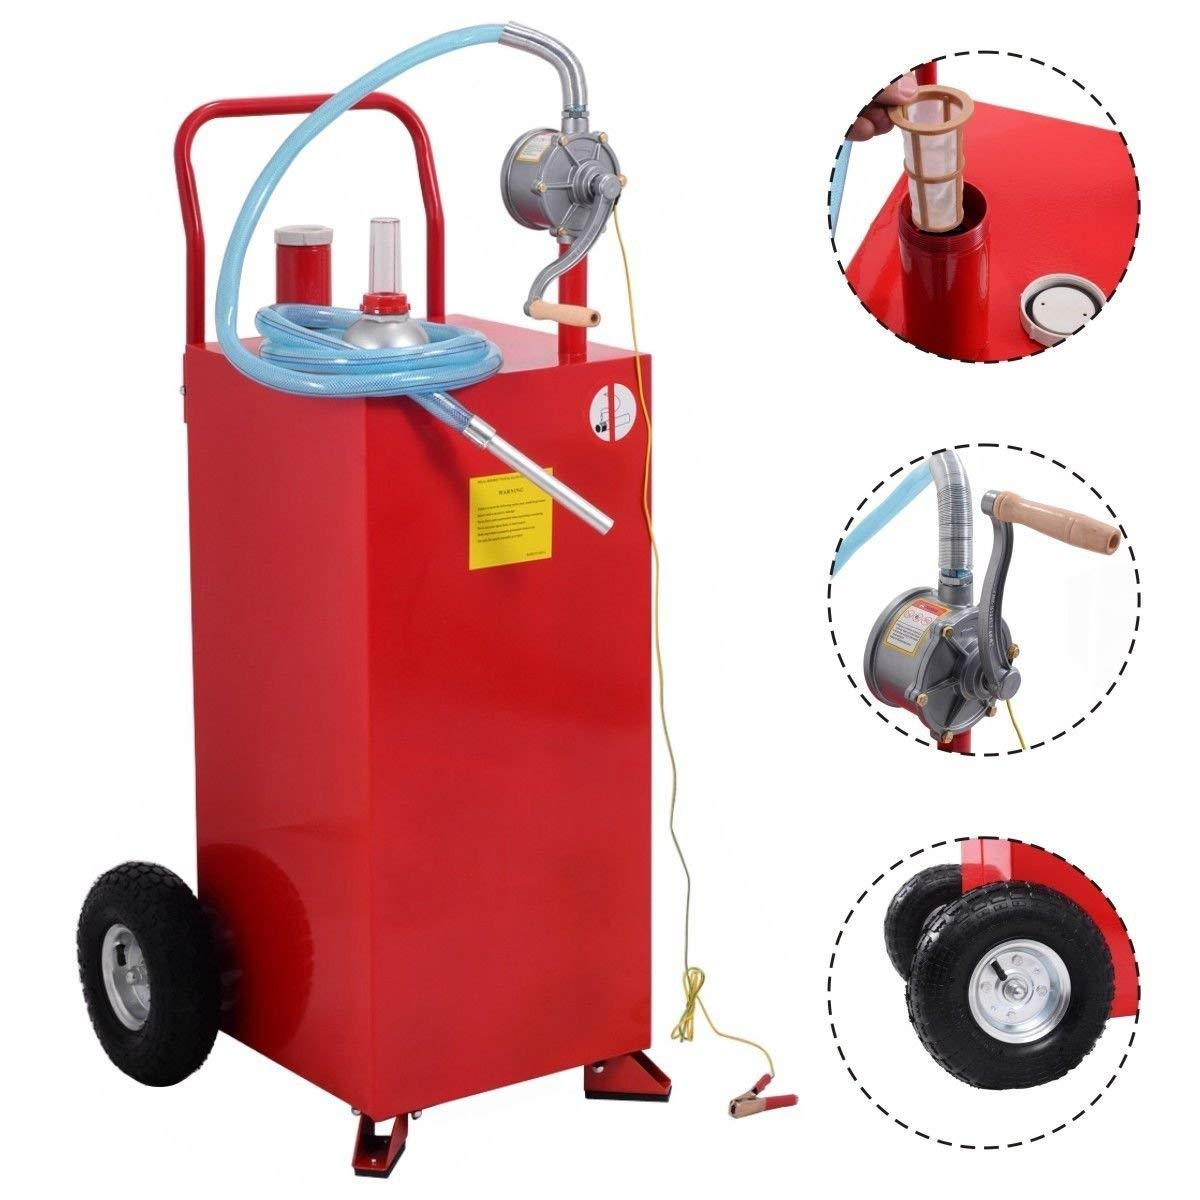 Goplus 30 Gallon Gas Caddy, Fuel Diesel Storage Tank, Rugged Durable Material, Anti-Static Ground Clamp, Labor-Saving Hand Operated Defueling Pump, 8 Feet Discharge Hose Red Caddy (Red) by Goplus